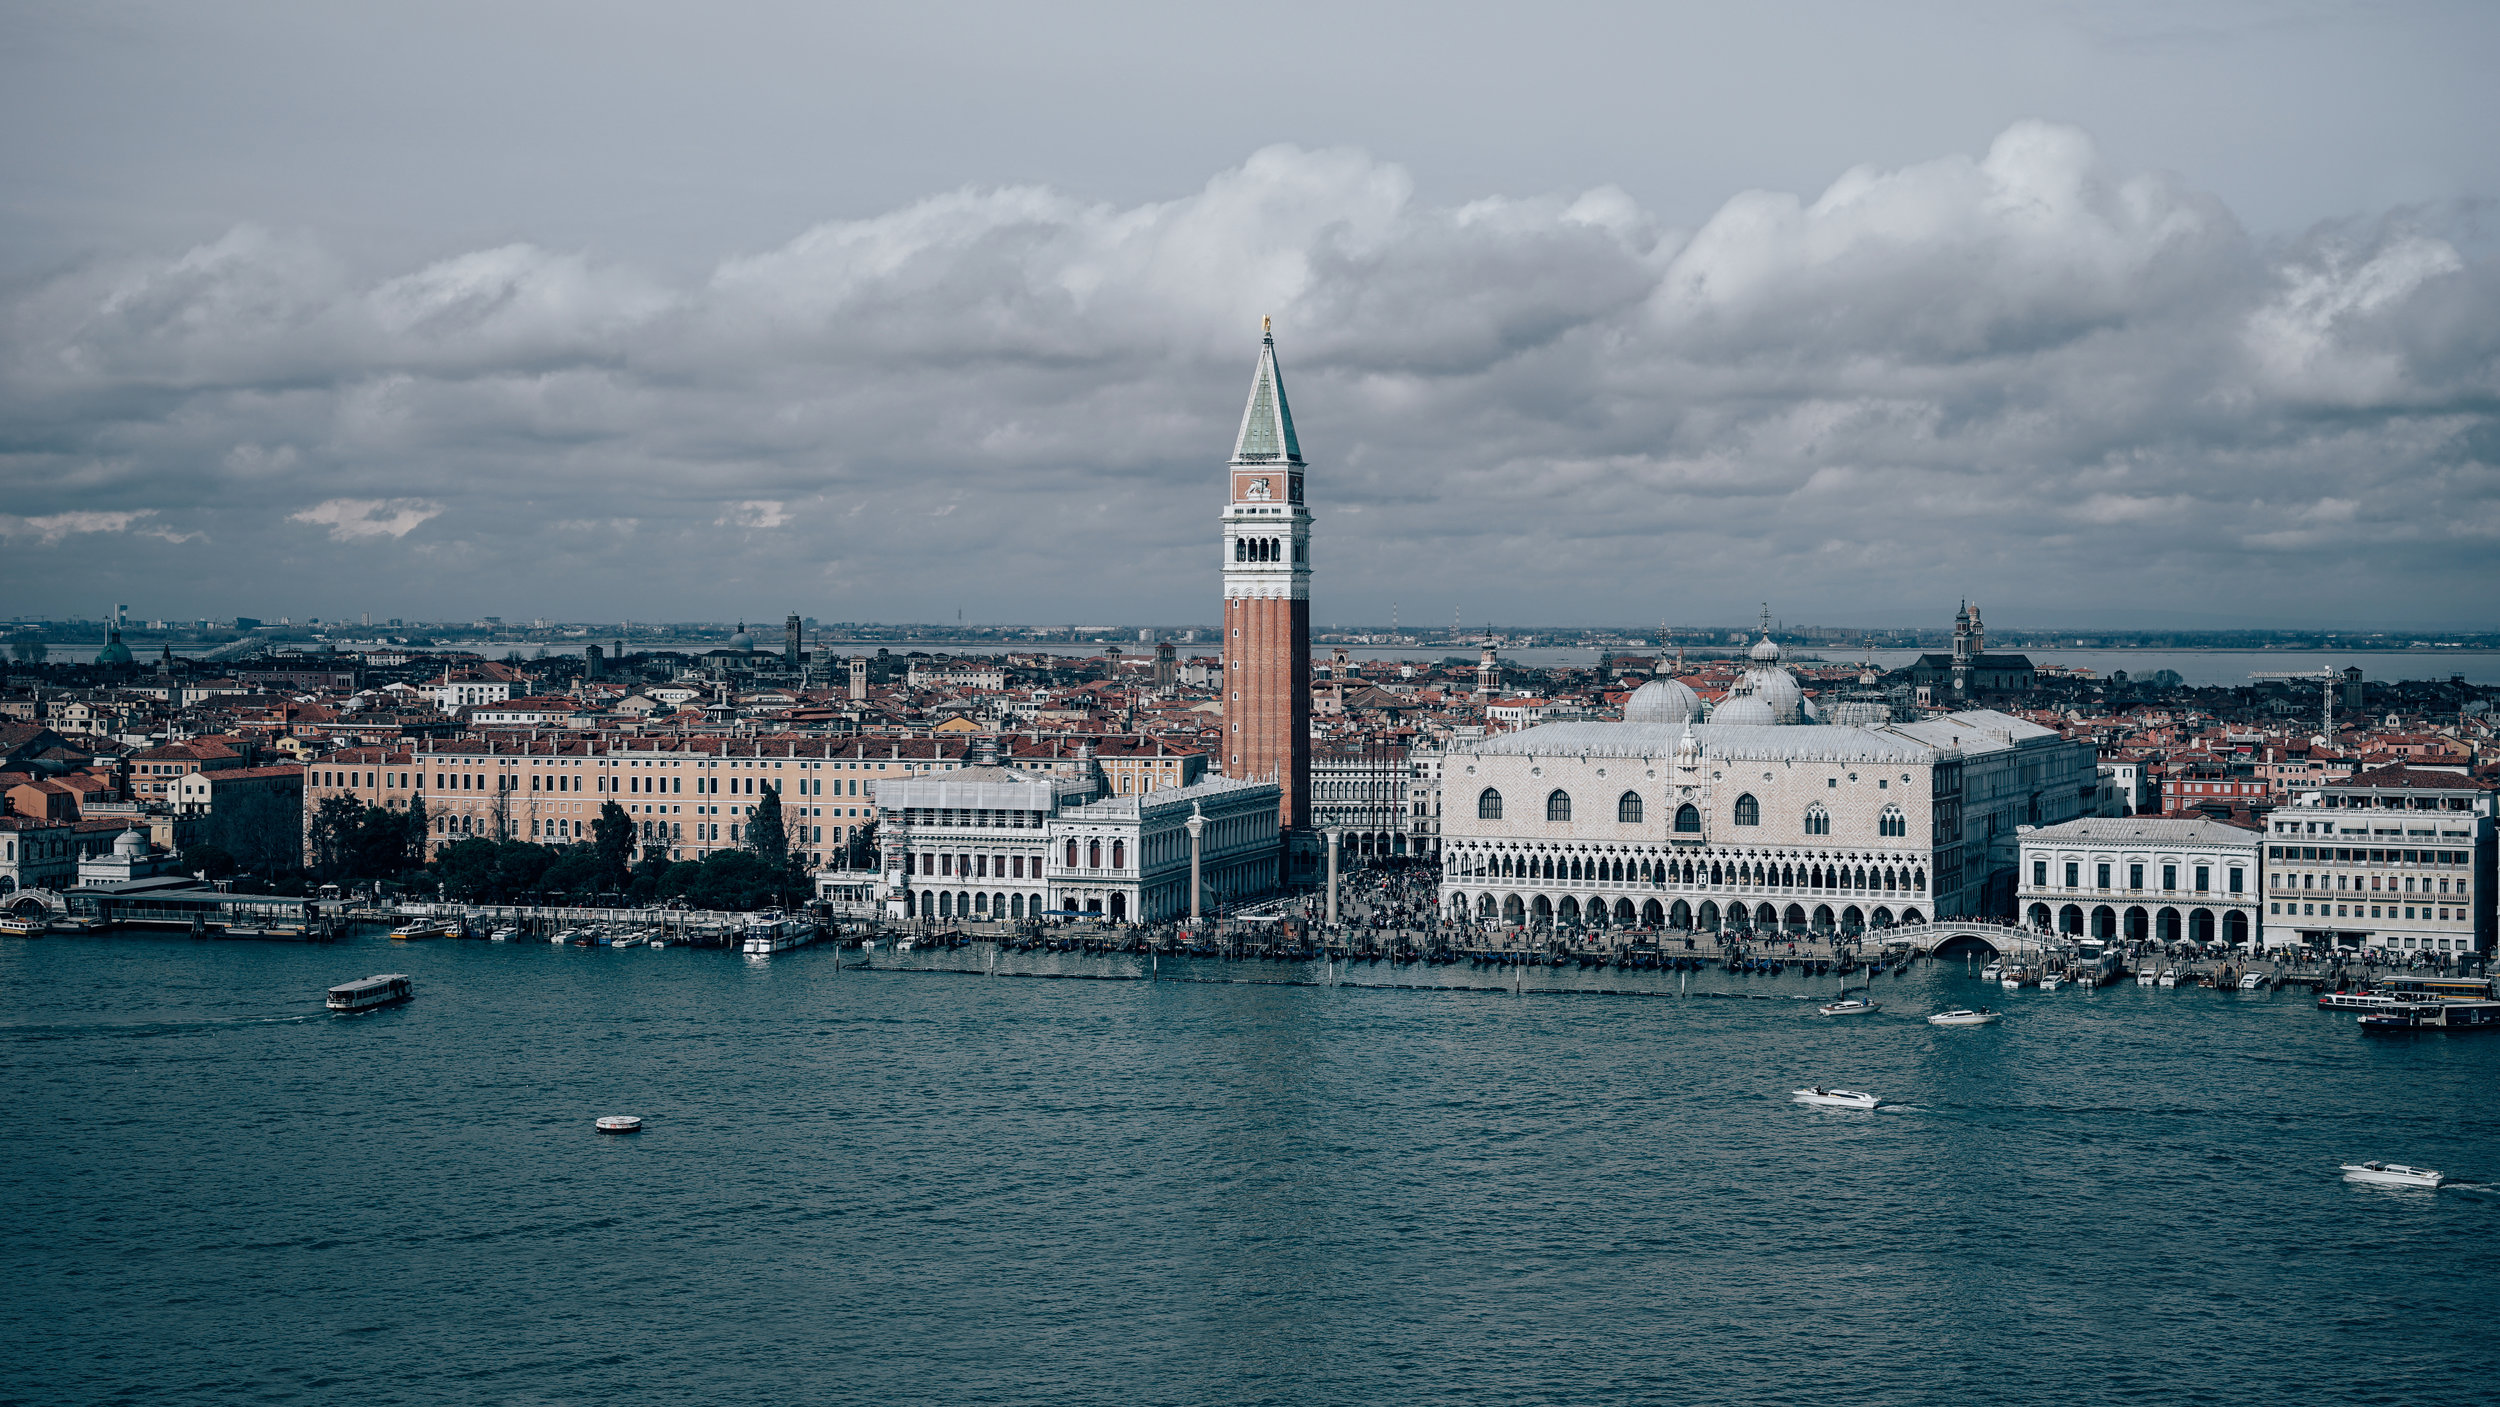 Venice | Zeiss Lenspire